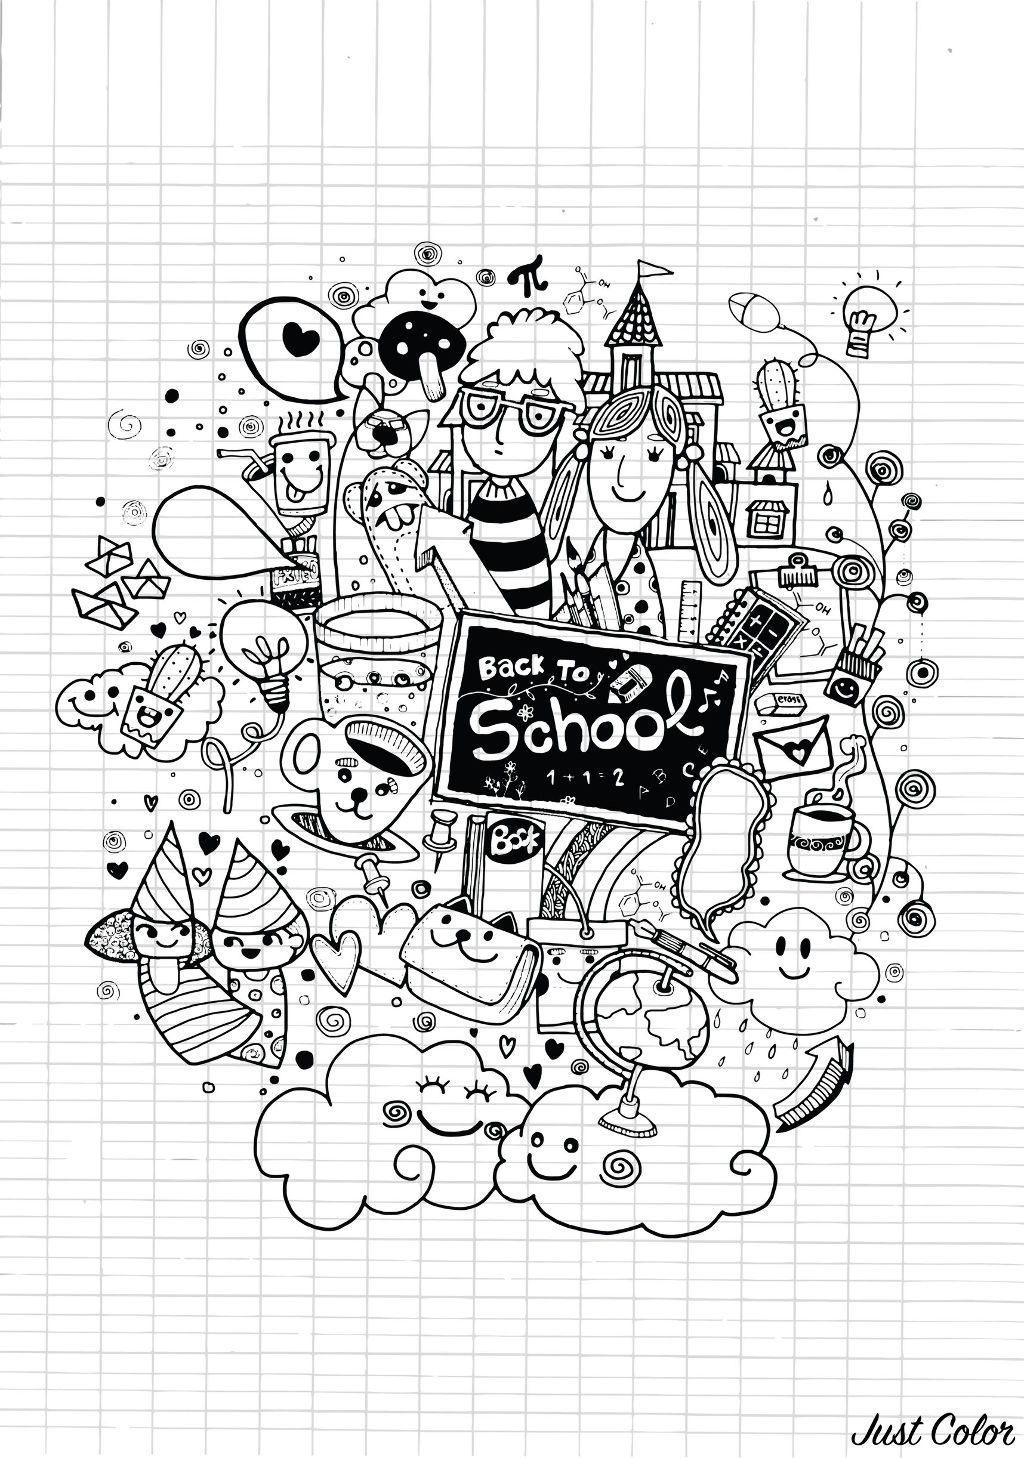 Doodle to color : 'Back to school', with funny and kawaii characters